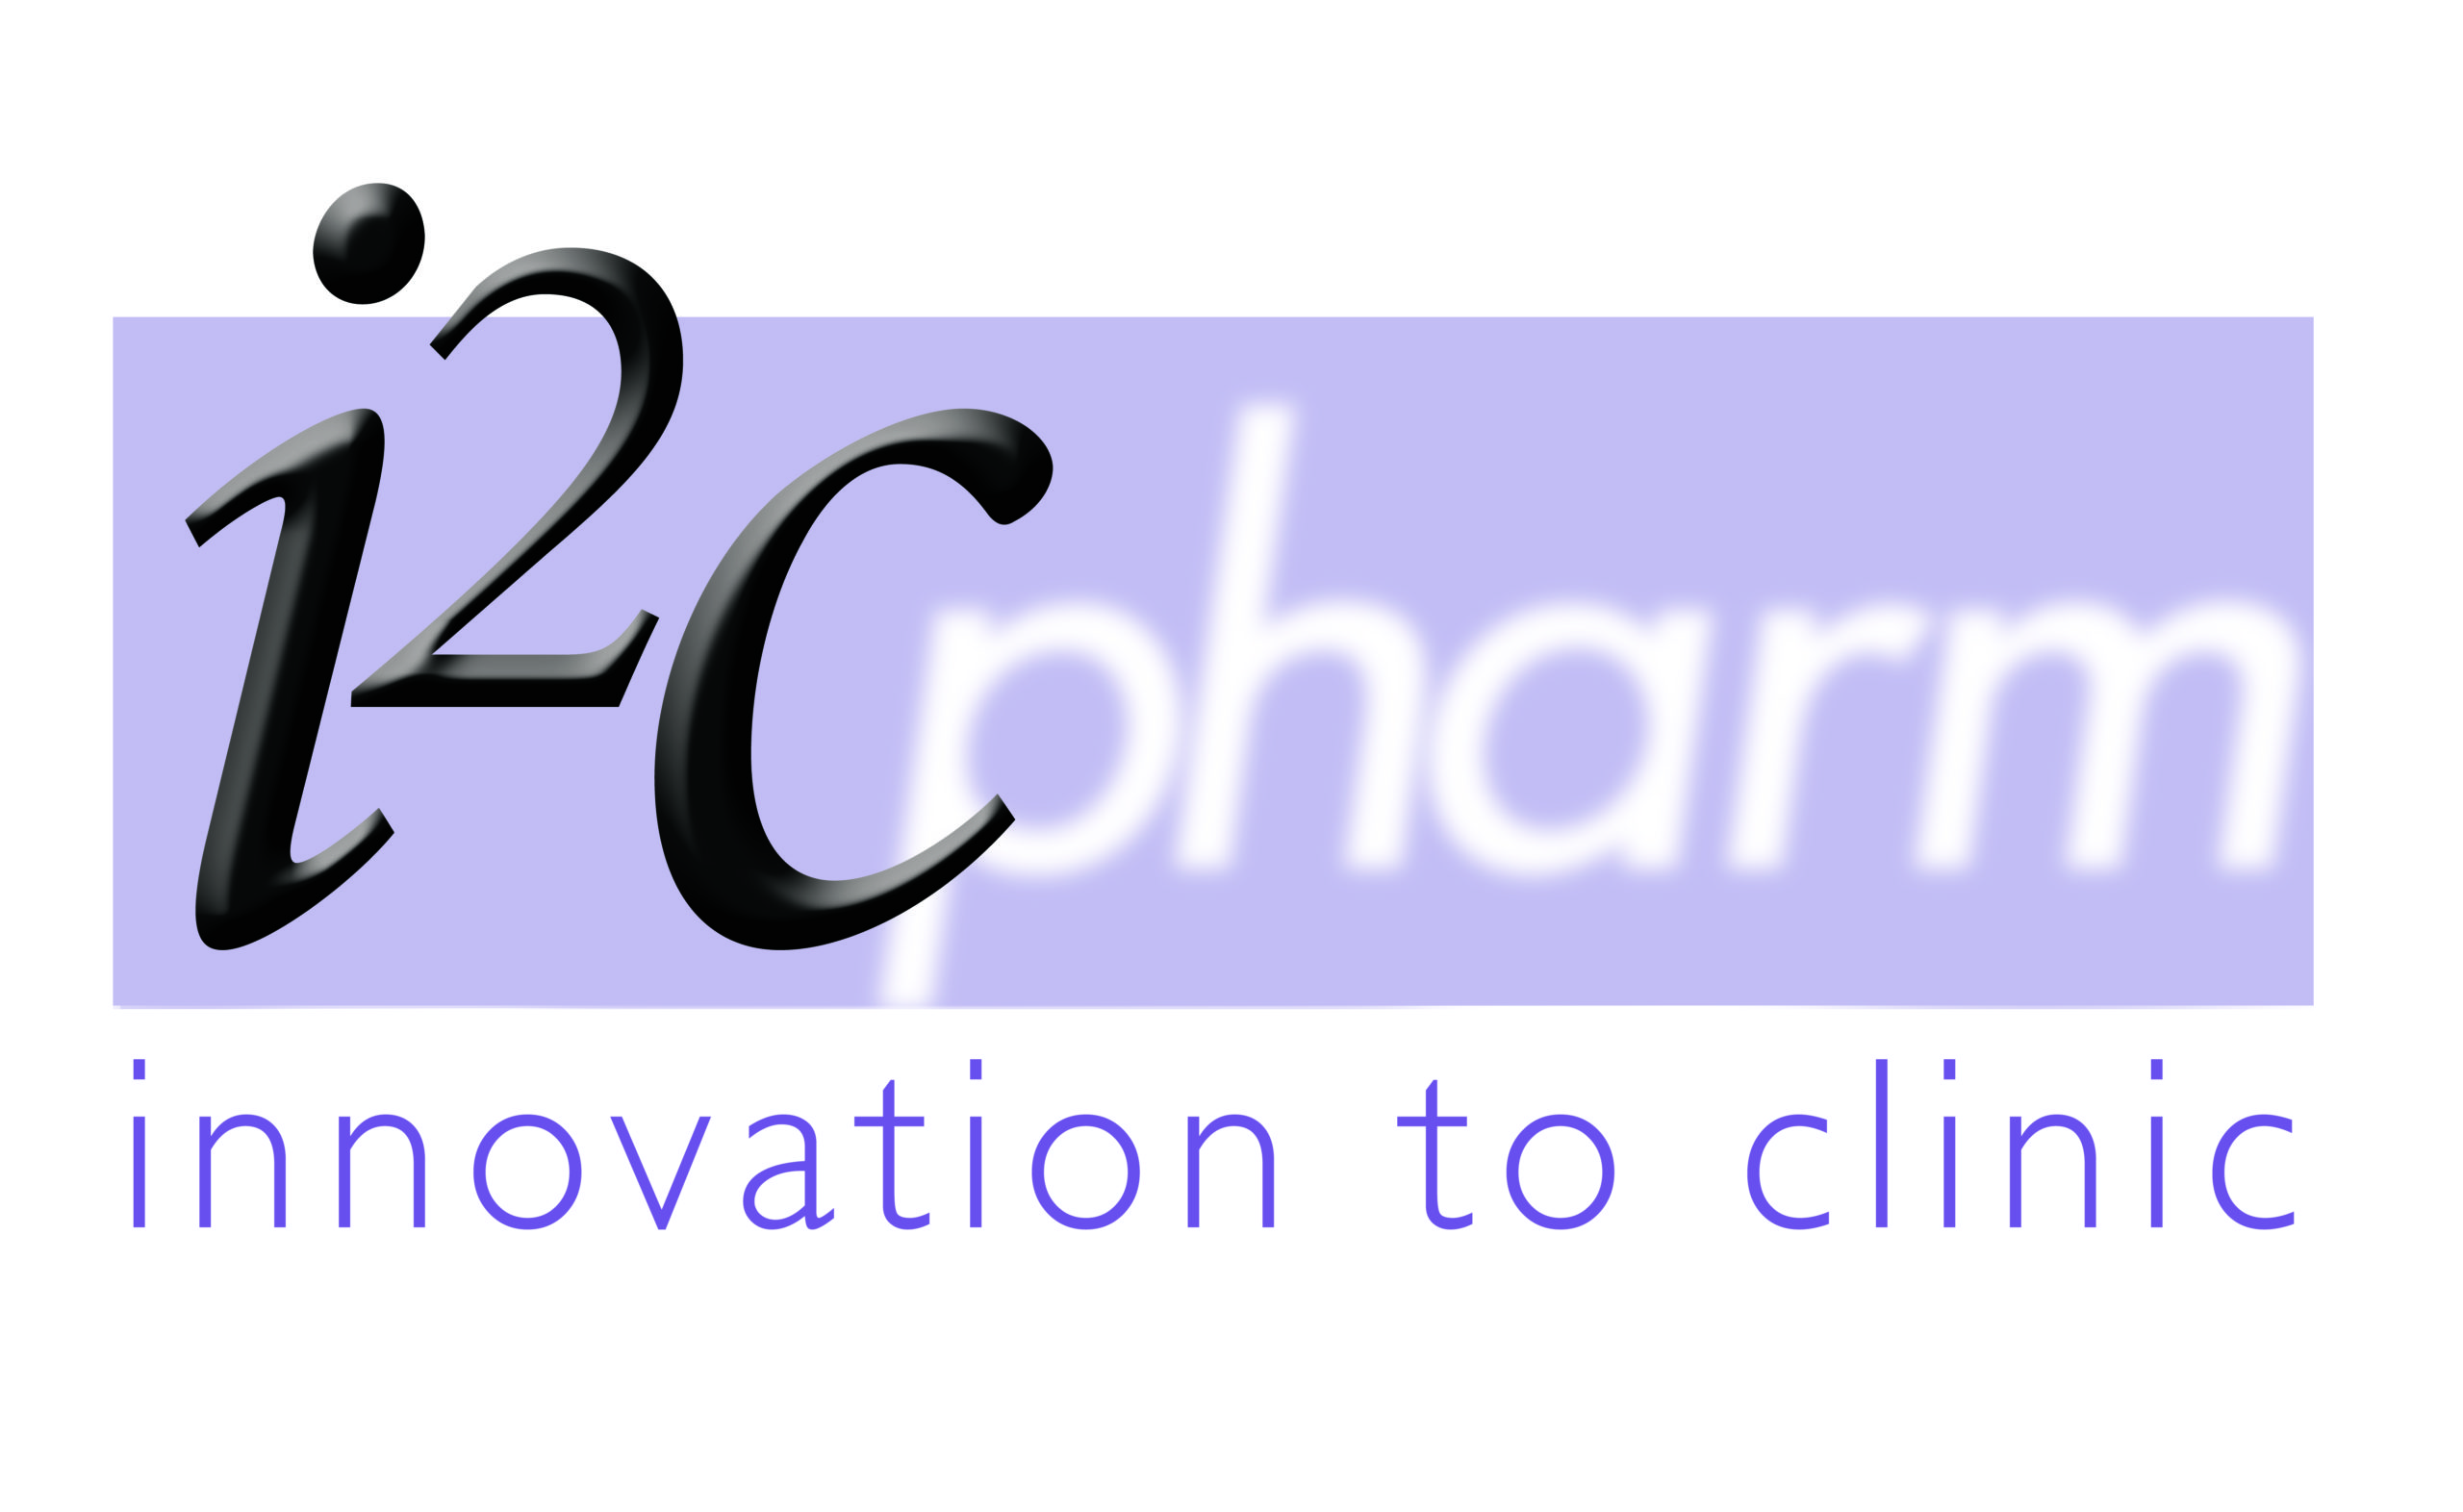 http://www.i2cpharm.co.uk/about.html